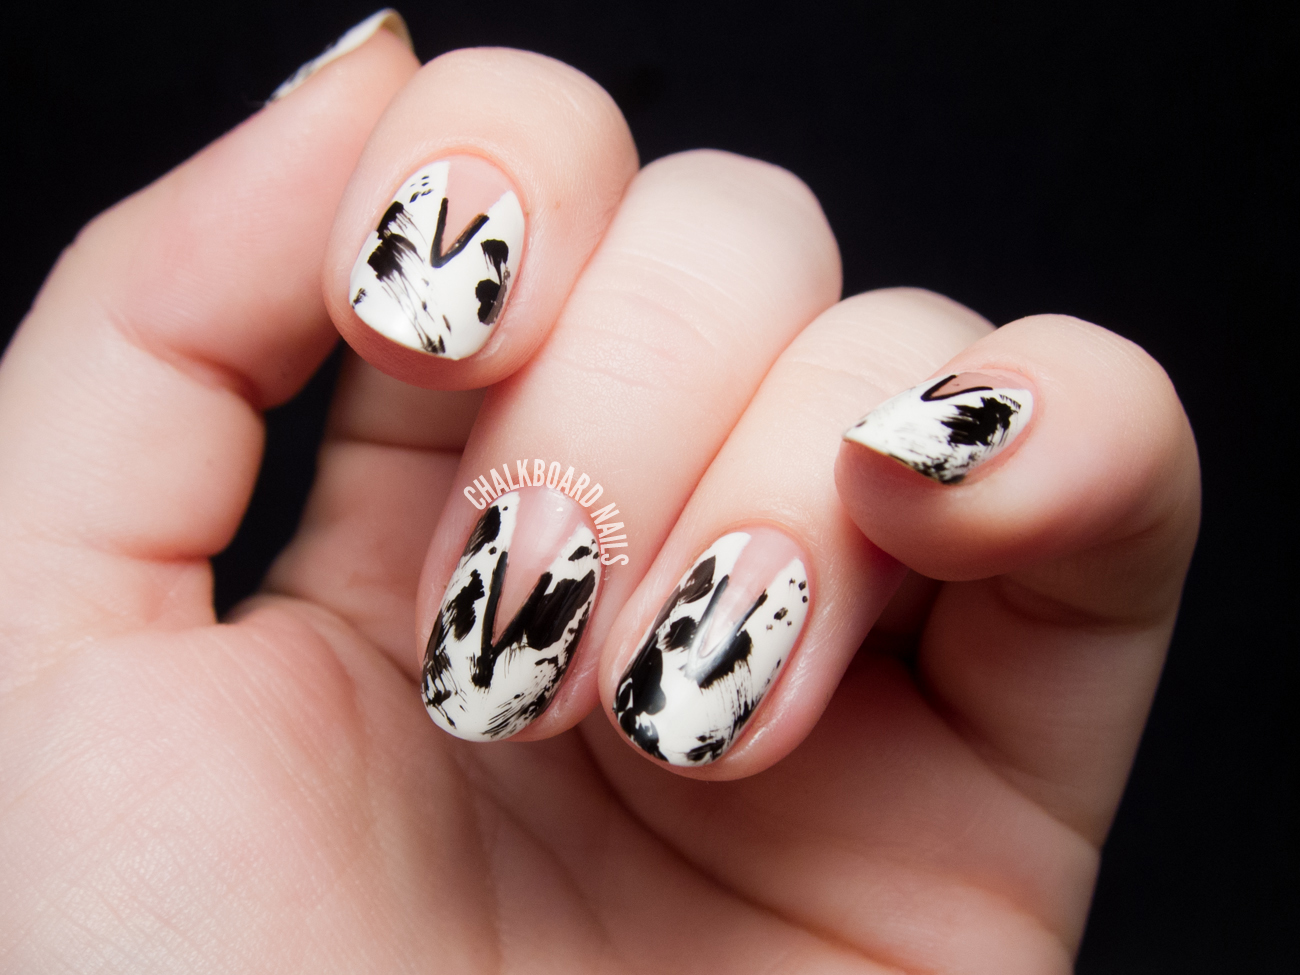 Inky Negative Space Nail Art by @chalkboardnails